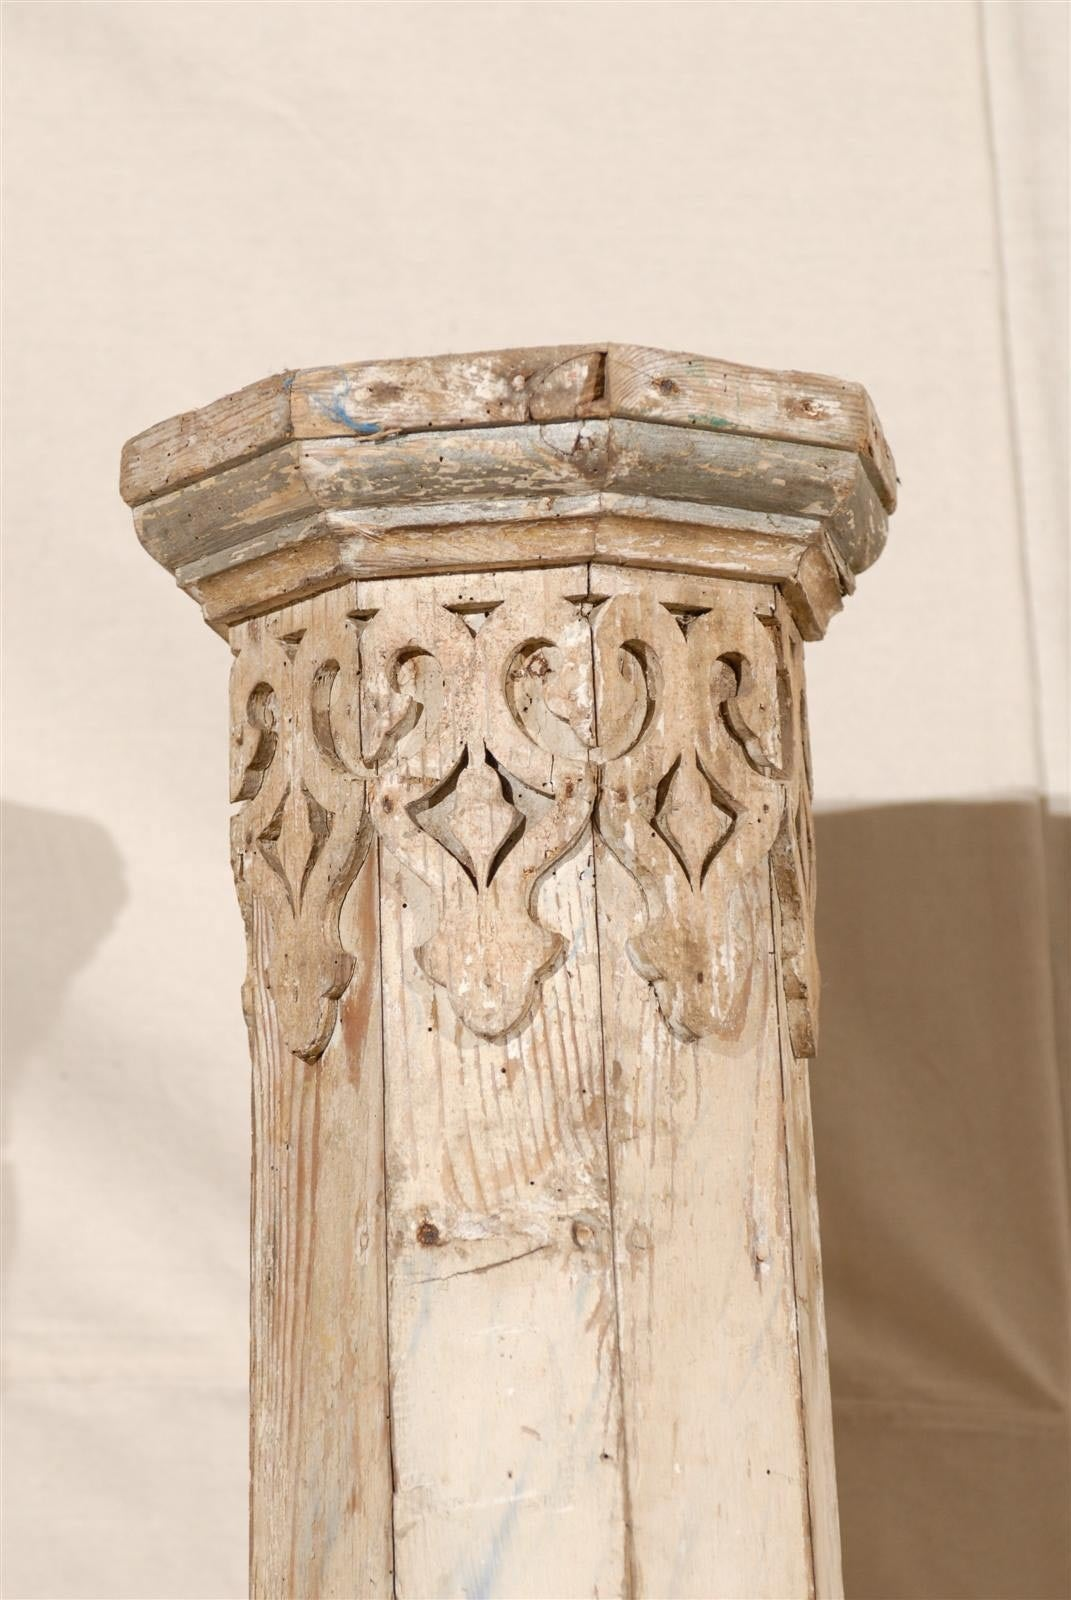 A Pair of 19th Century European Slender Wooden Columns with Delicate Decor 2